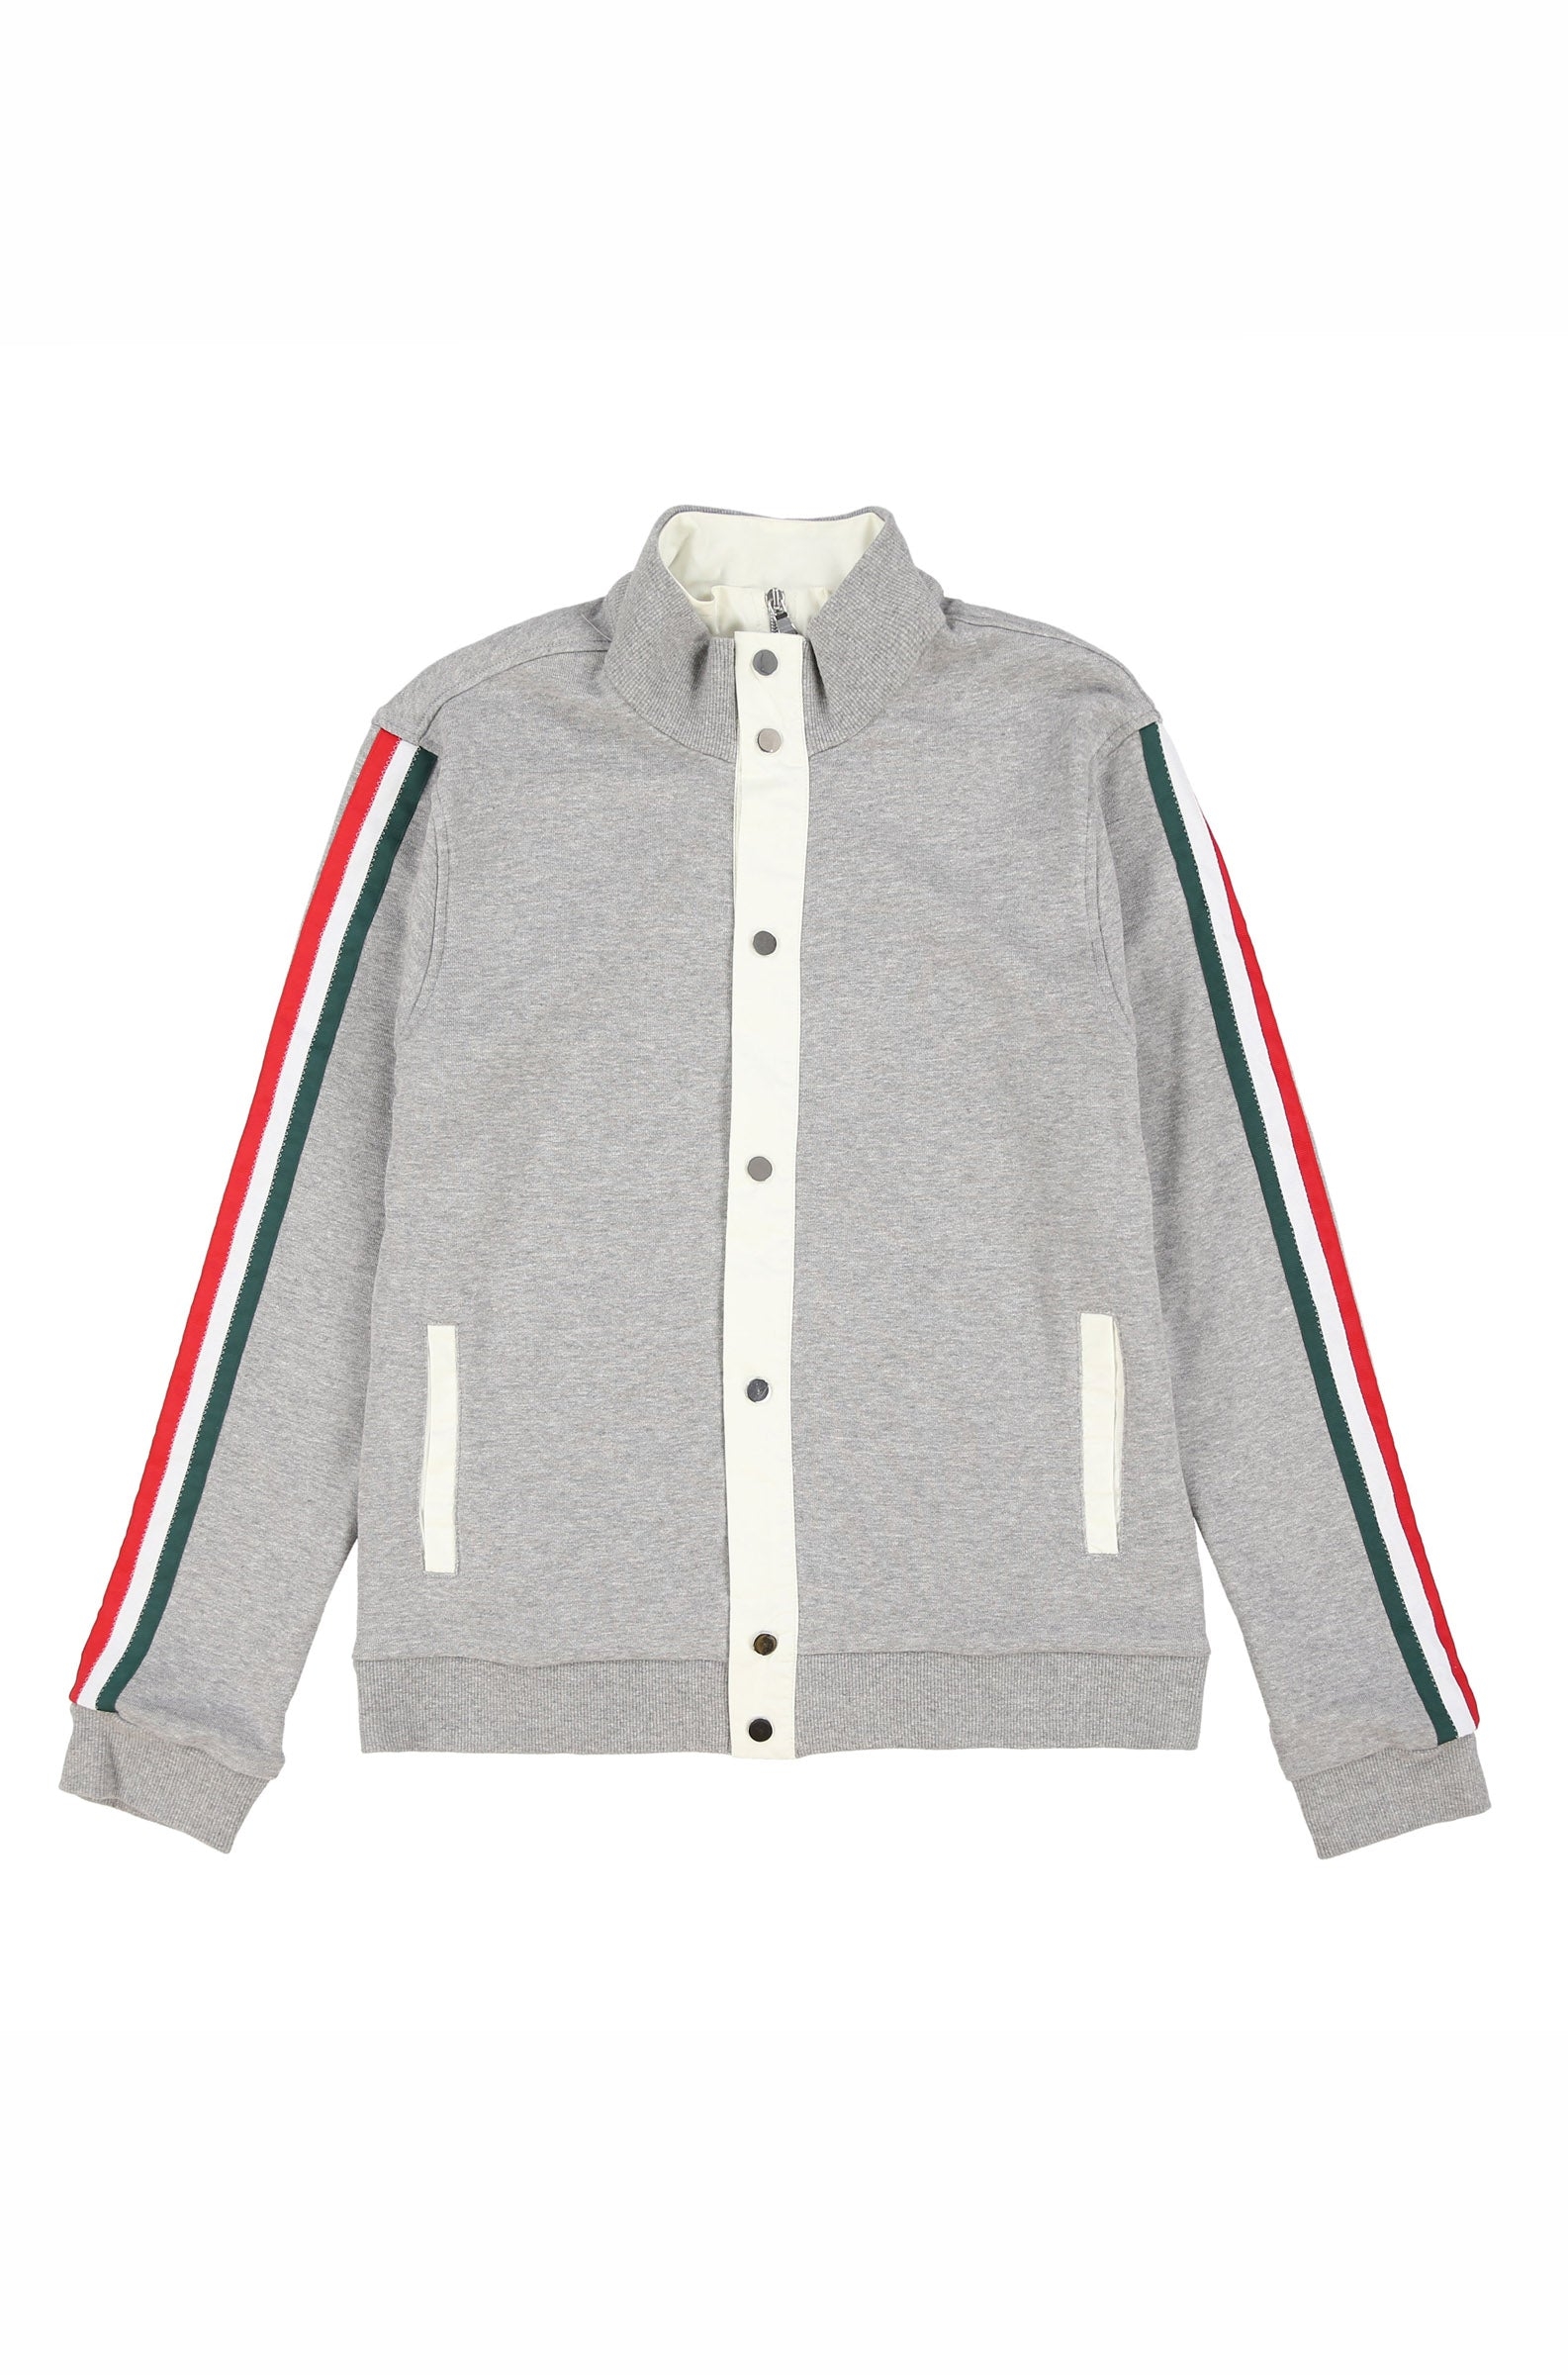 JOMO DOUBLE TRACK JACKET (HEATHER GREY)